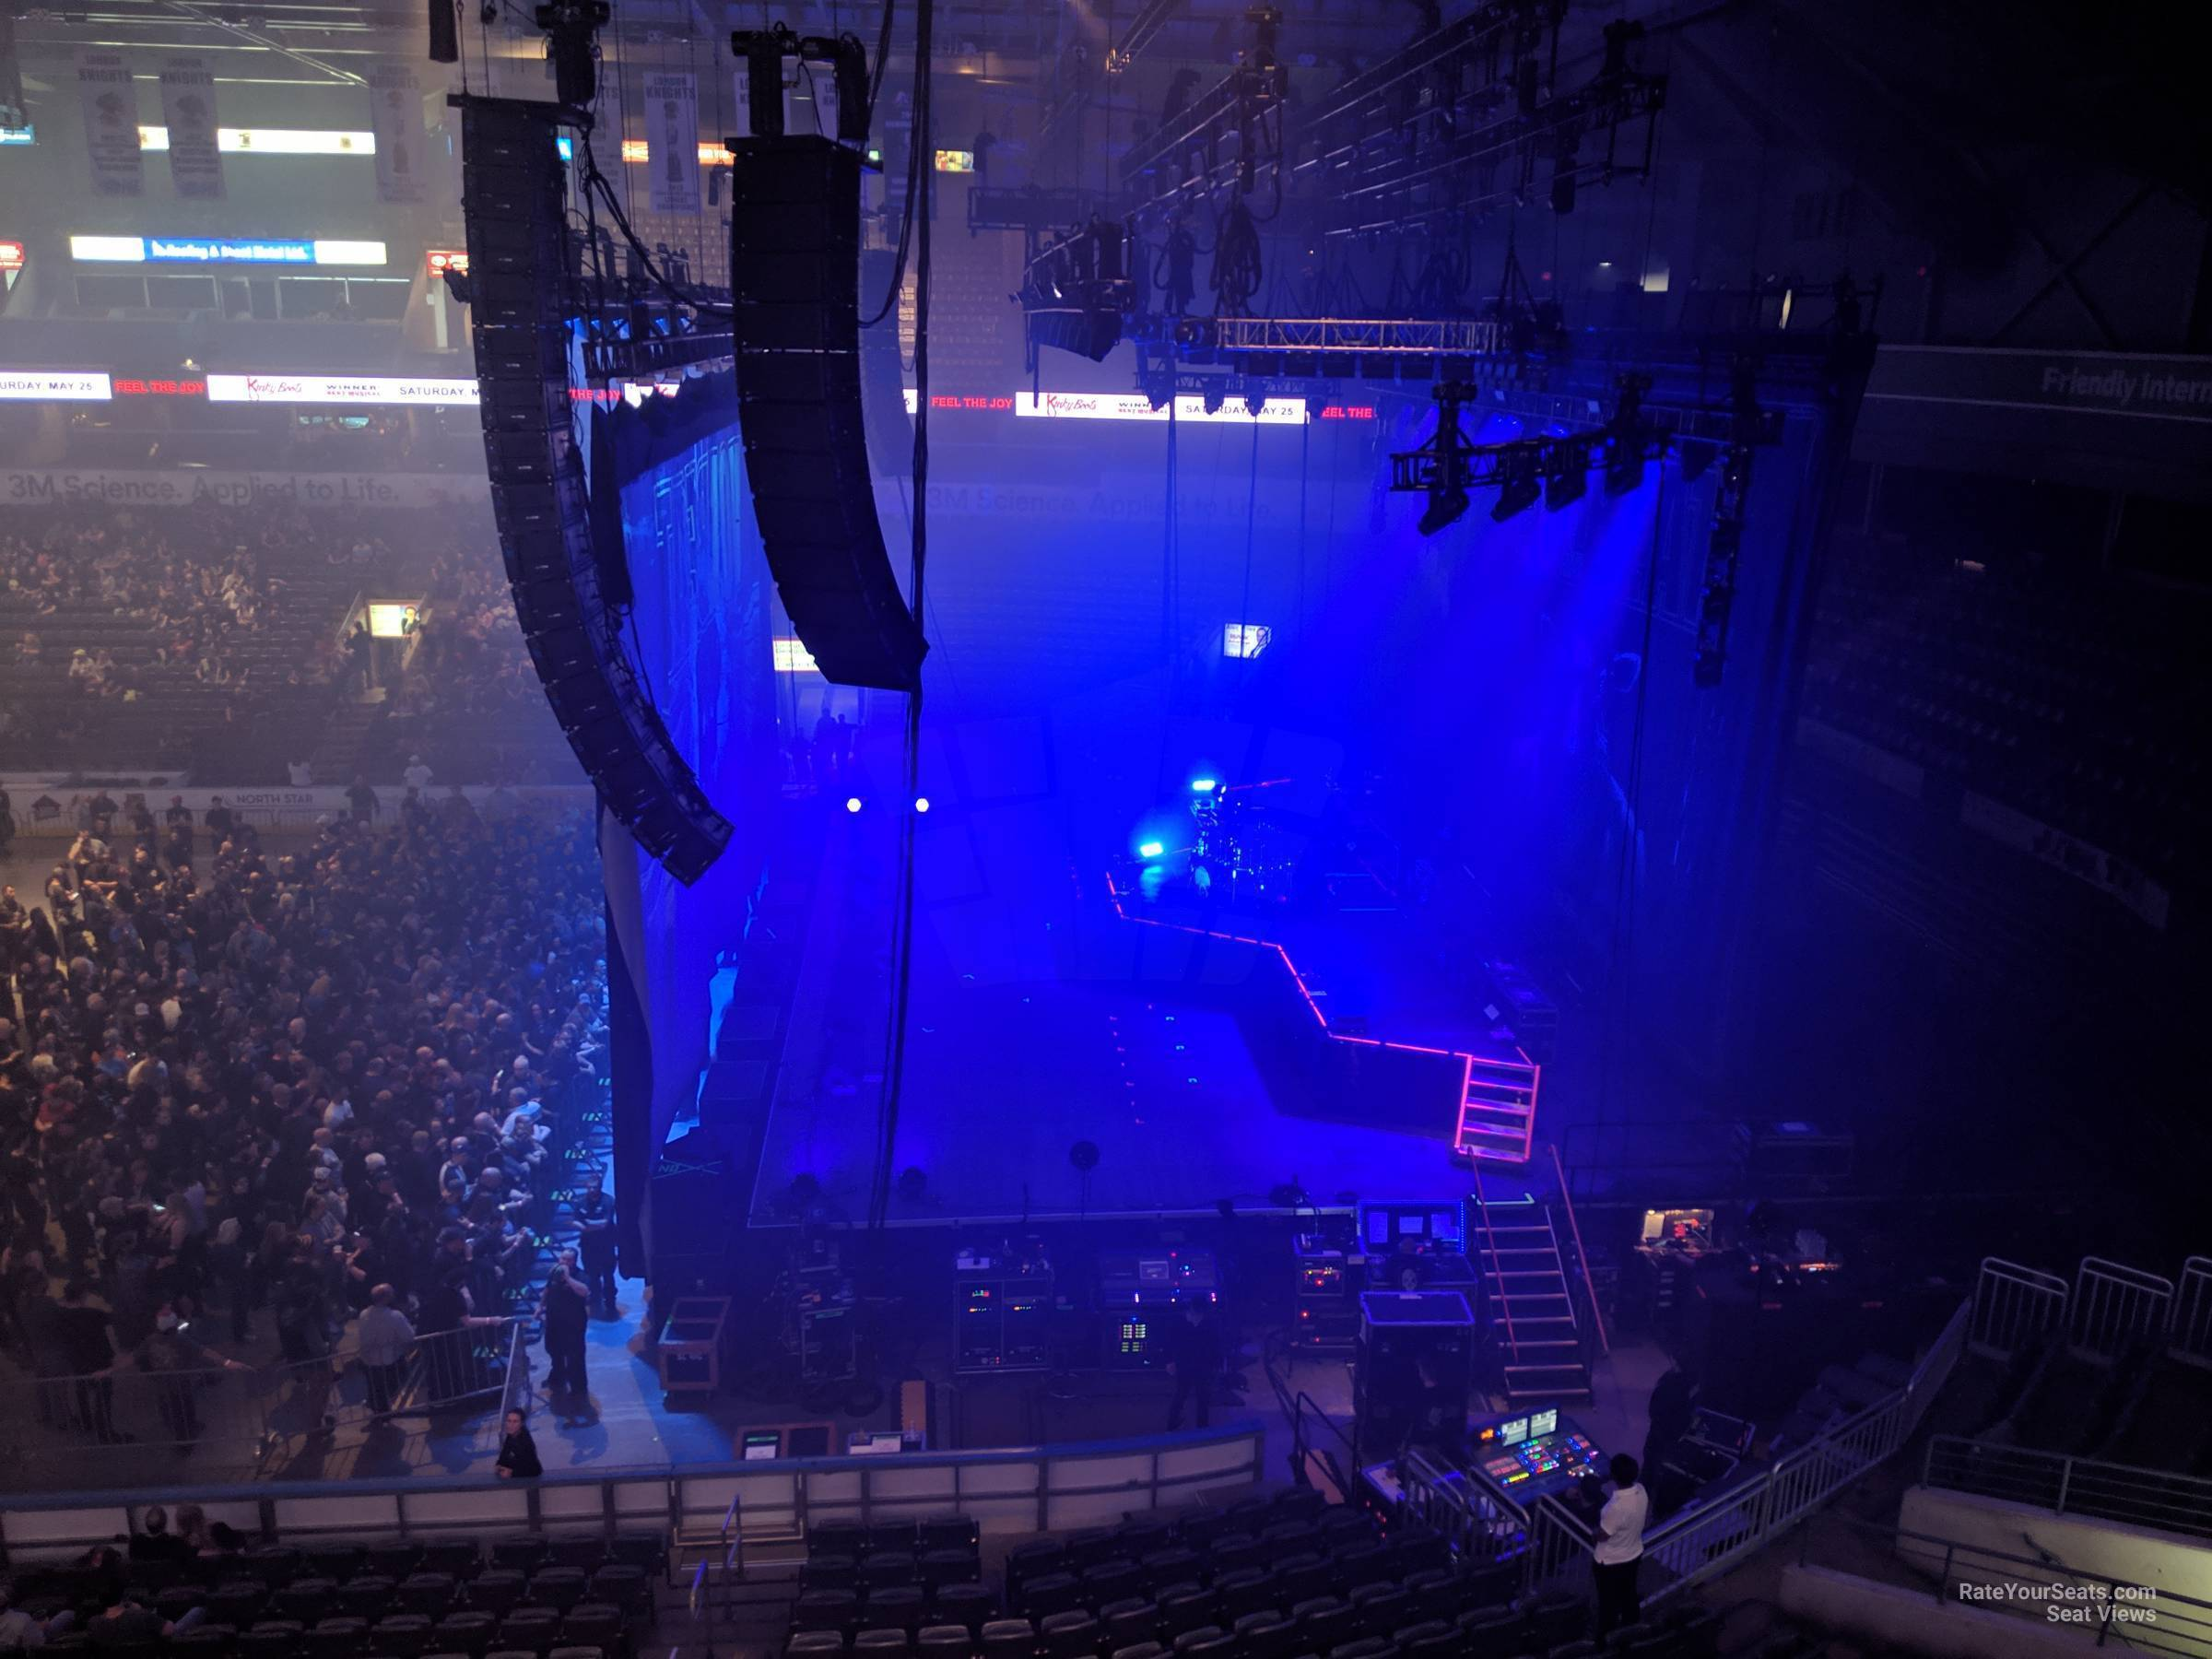 Section 302 At Budweiser Gardens Rateyourseats Com